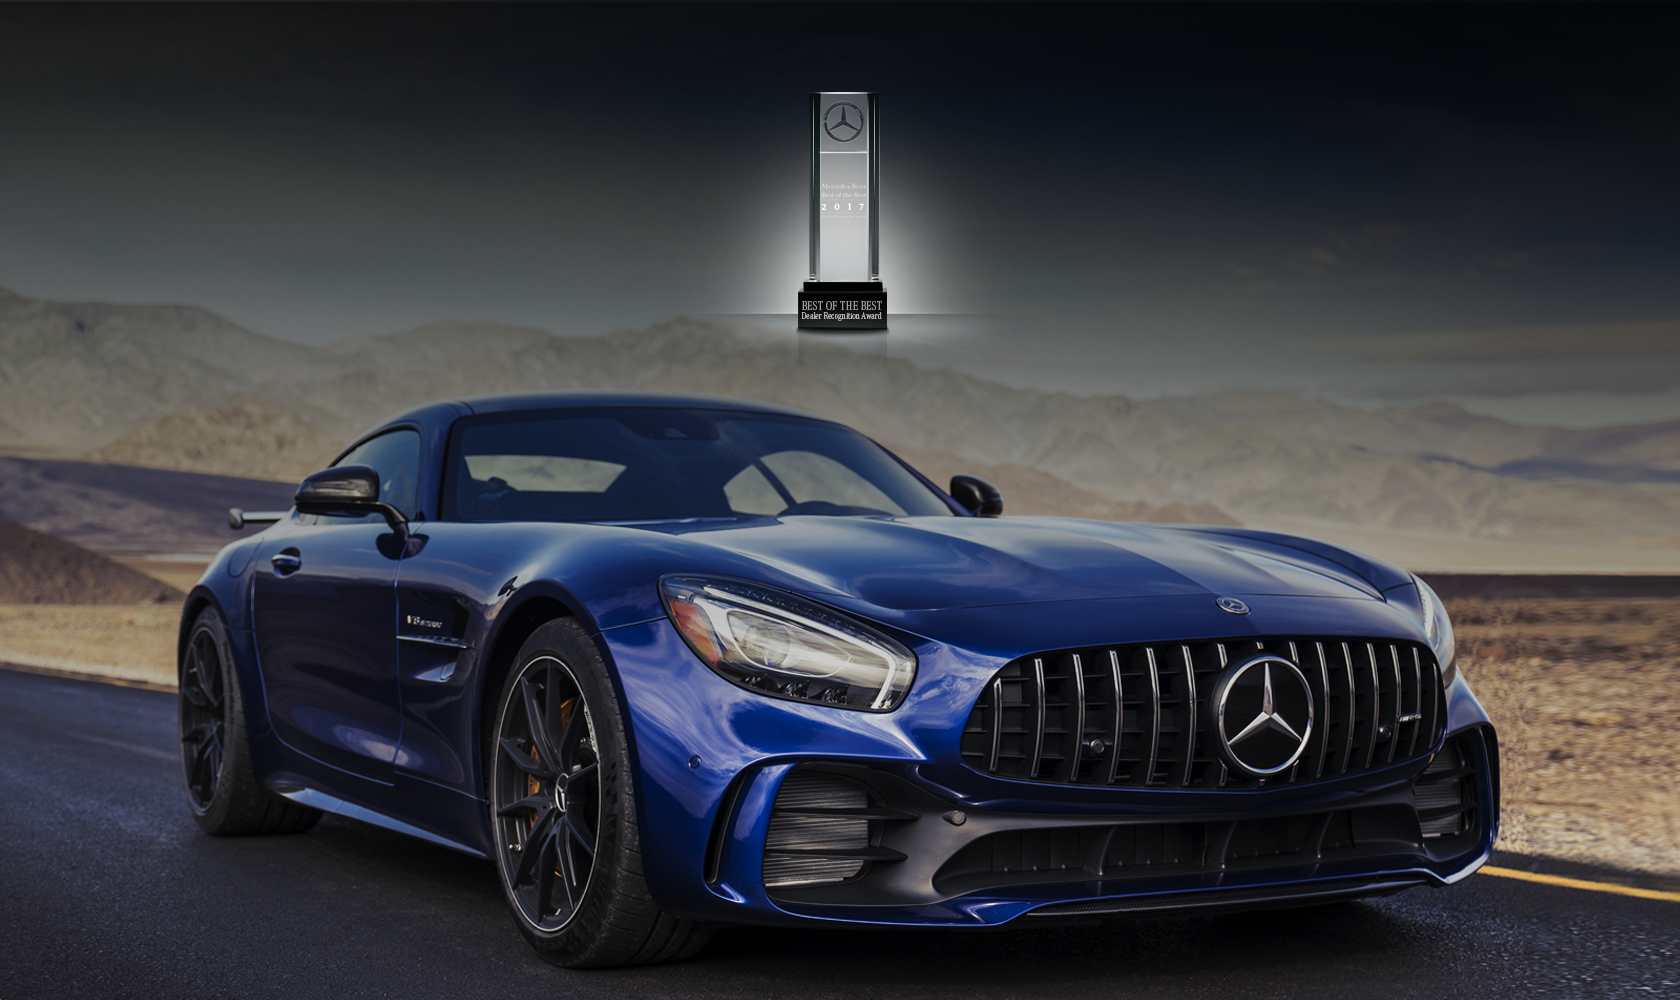 Mercedes benz of massapequa luxury auto dealership for Mercedes benz college graduate program